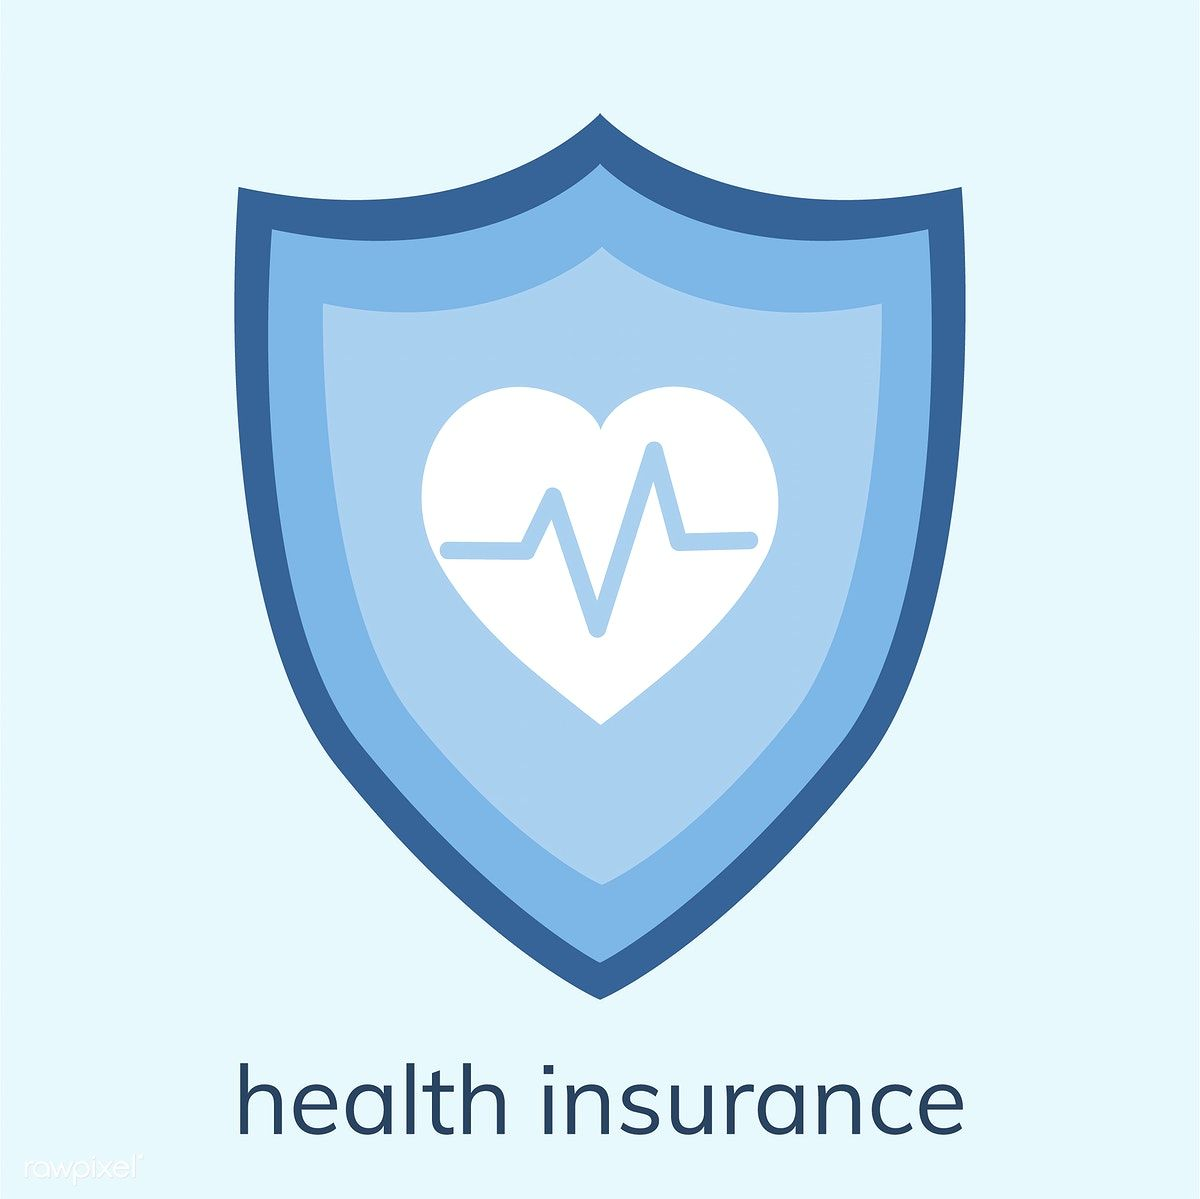 Illustration Of A Health Insurance Icon Free Image By Rawpixel Com